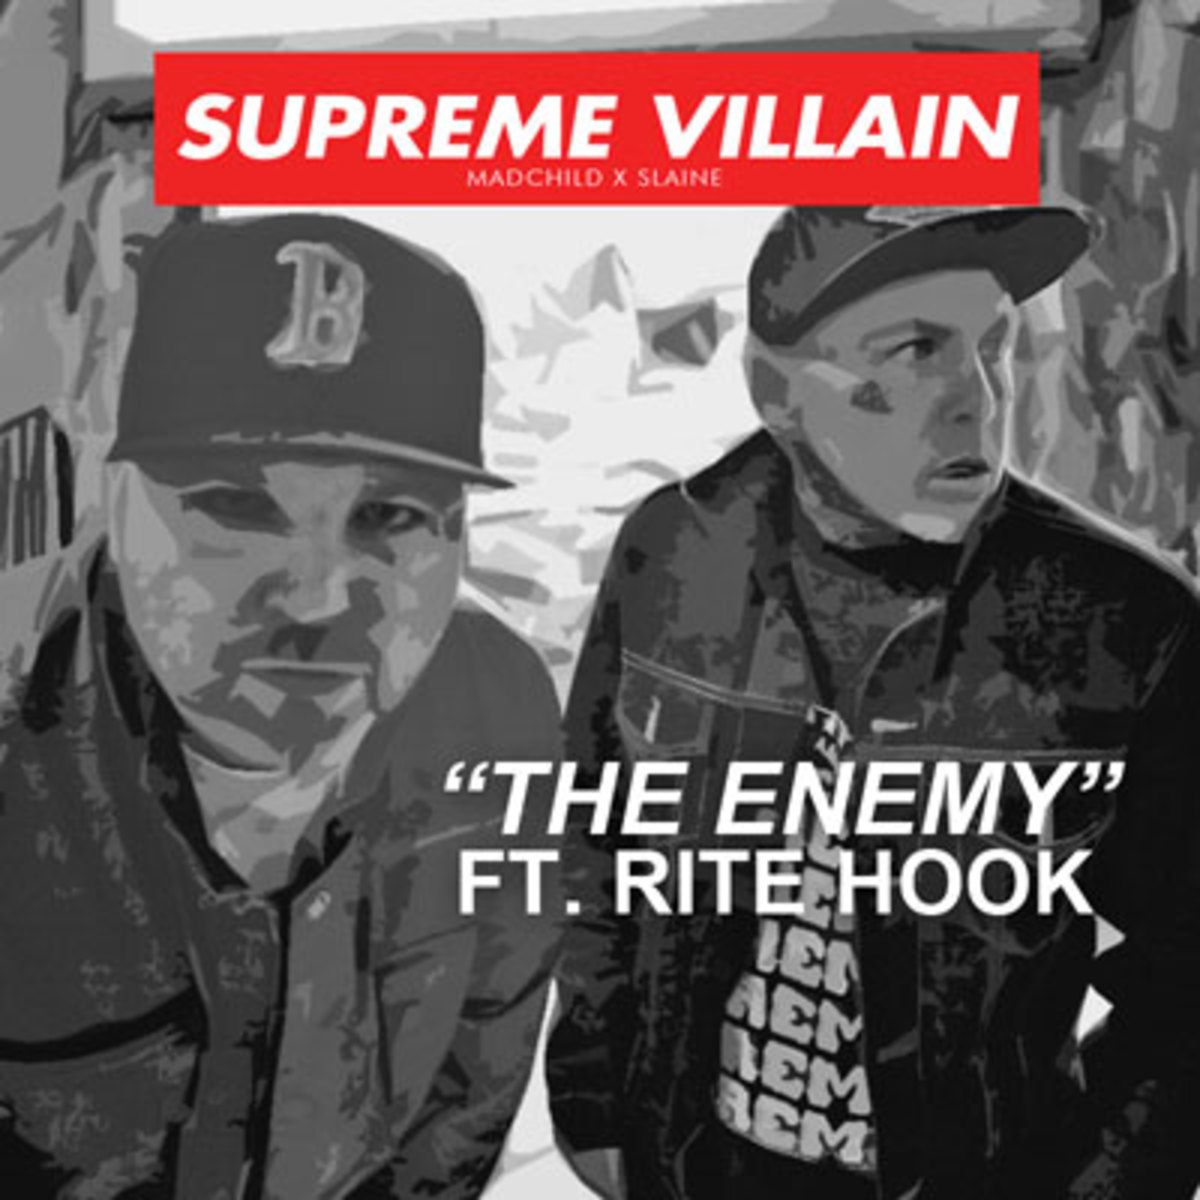 supremevillain-enemy.jpg